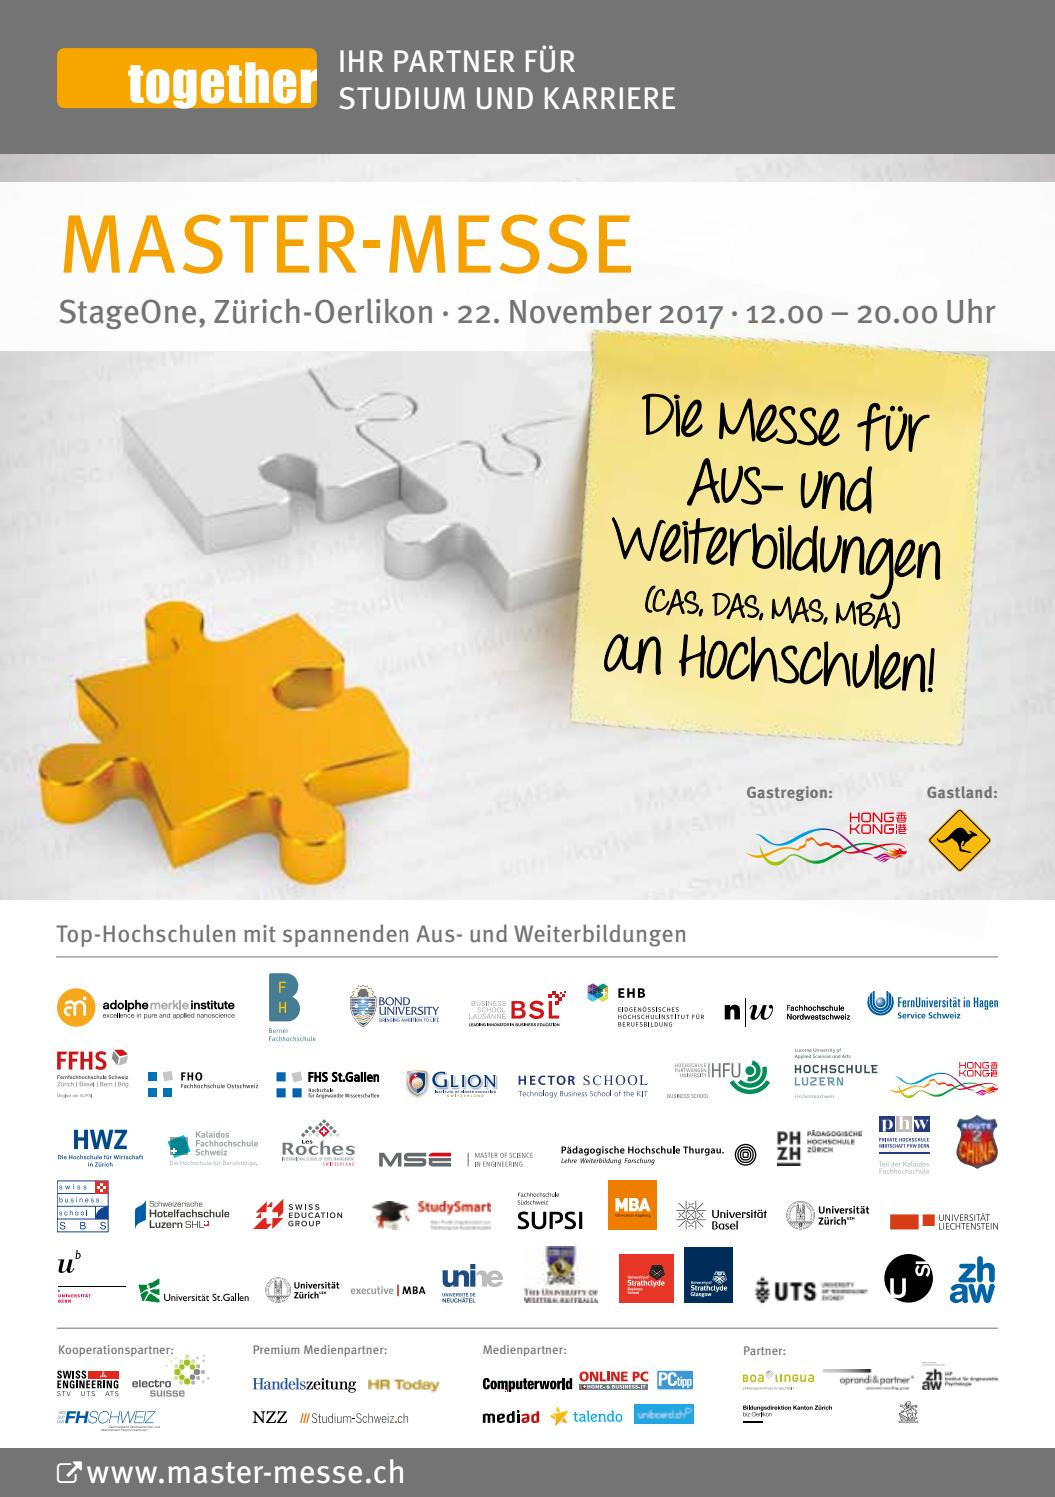 Messe-Guide Master-Messe 2017 by together ag - issuu